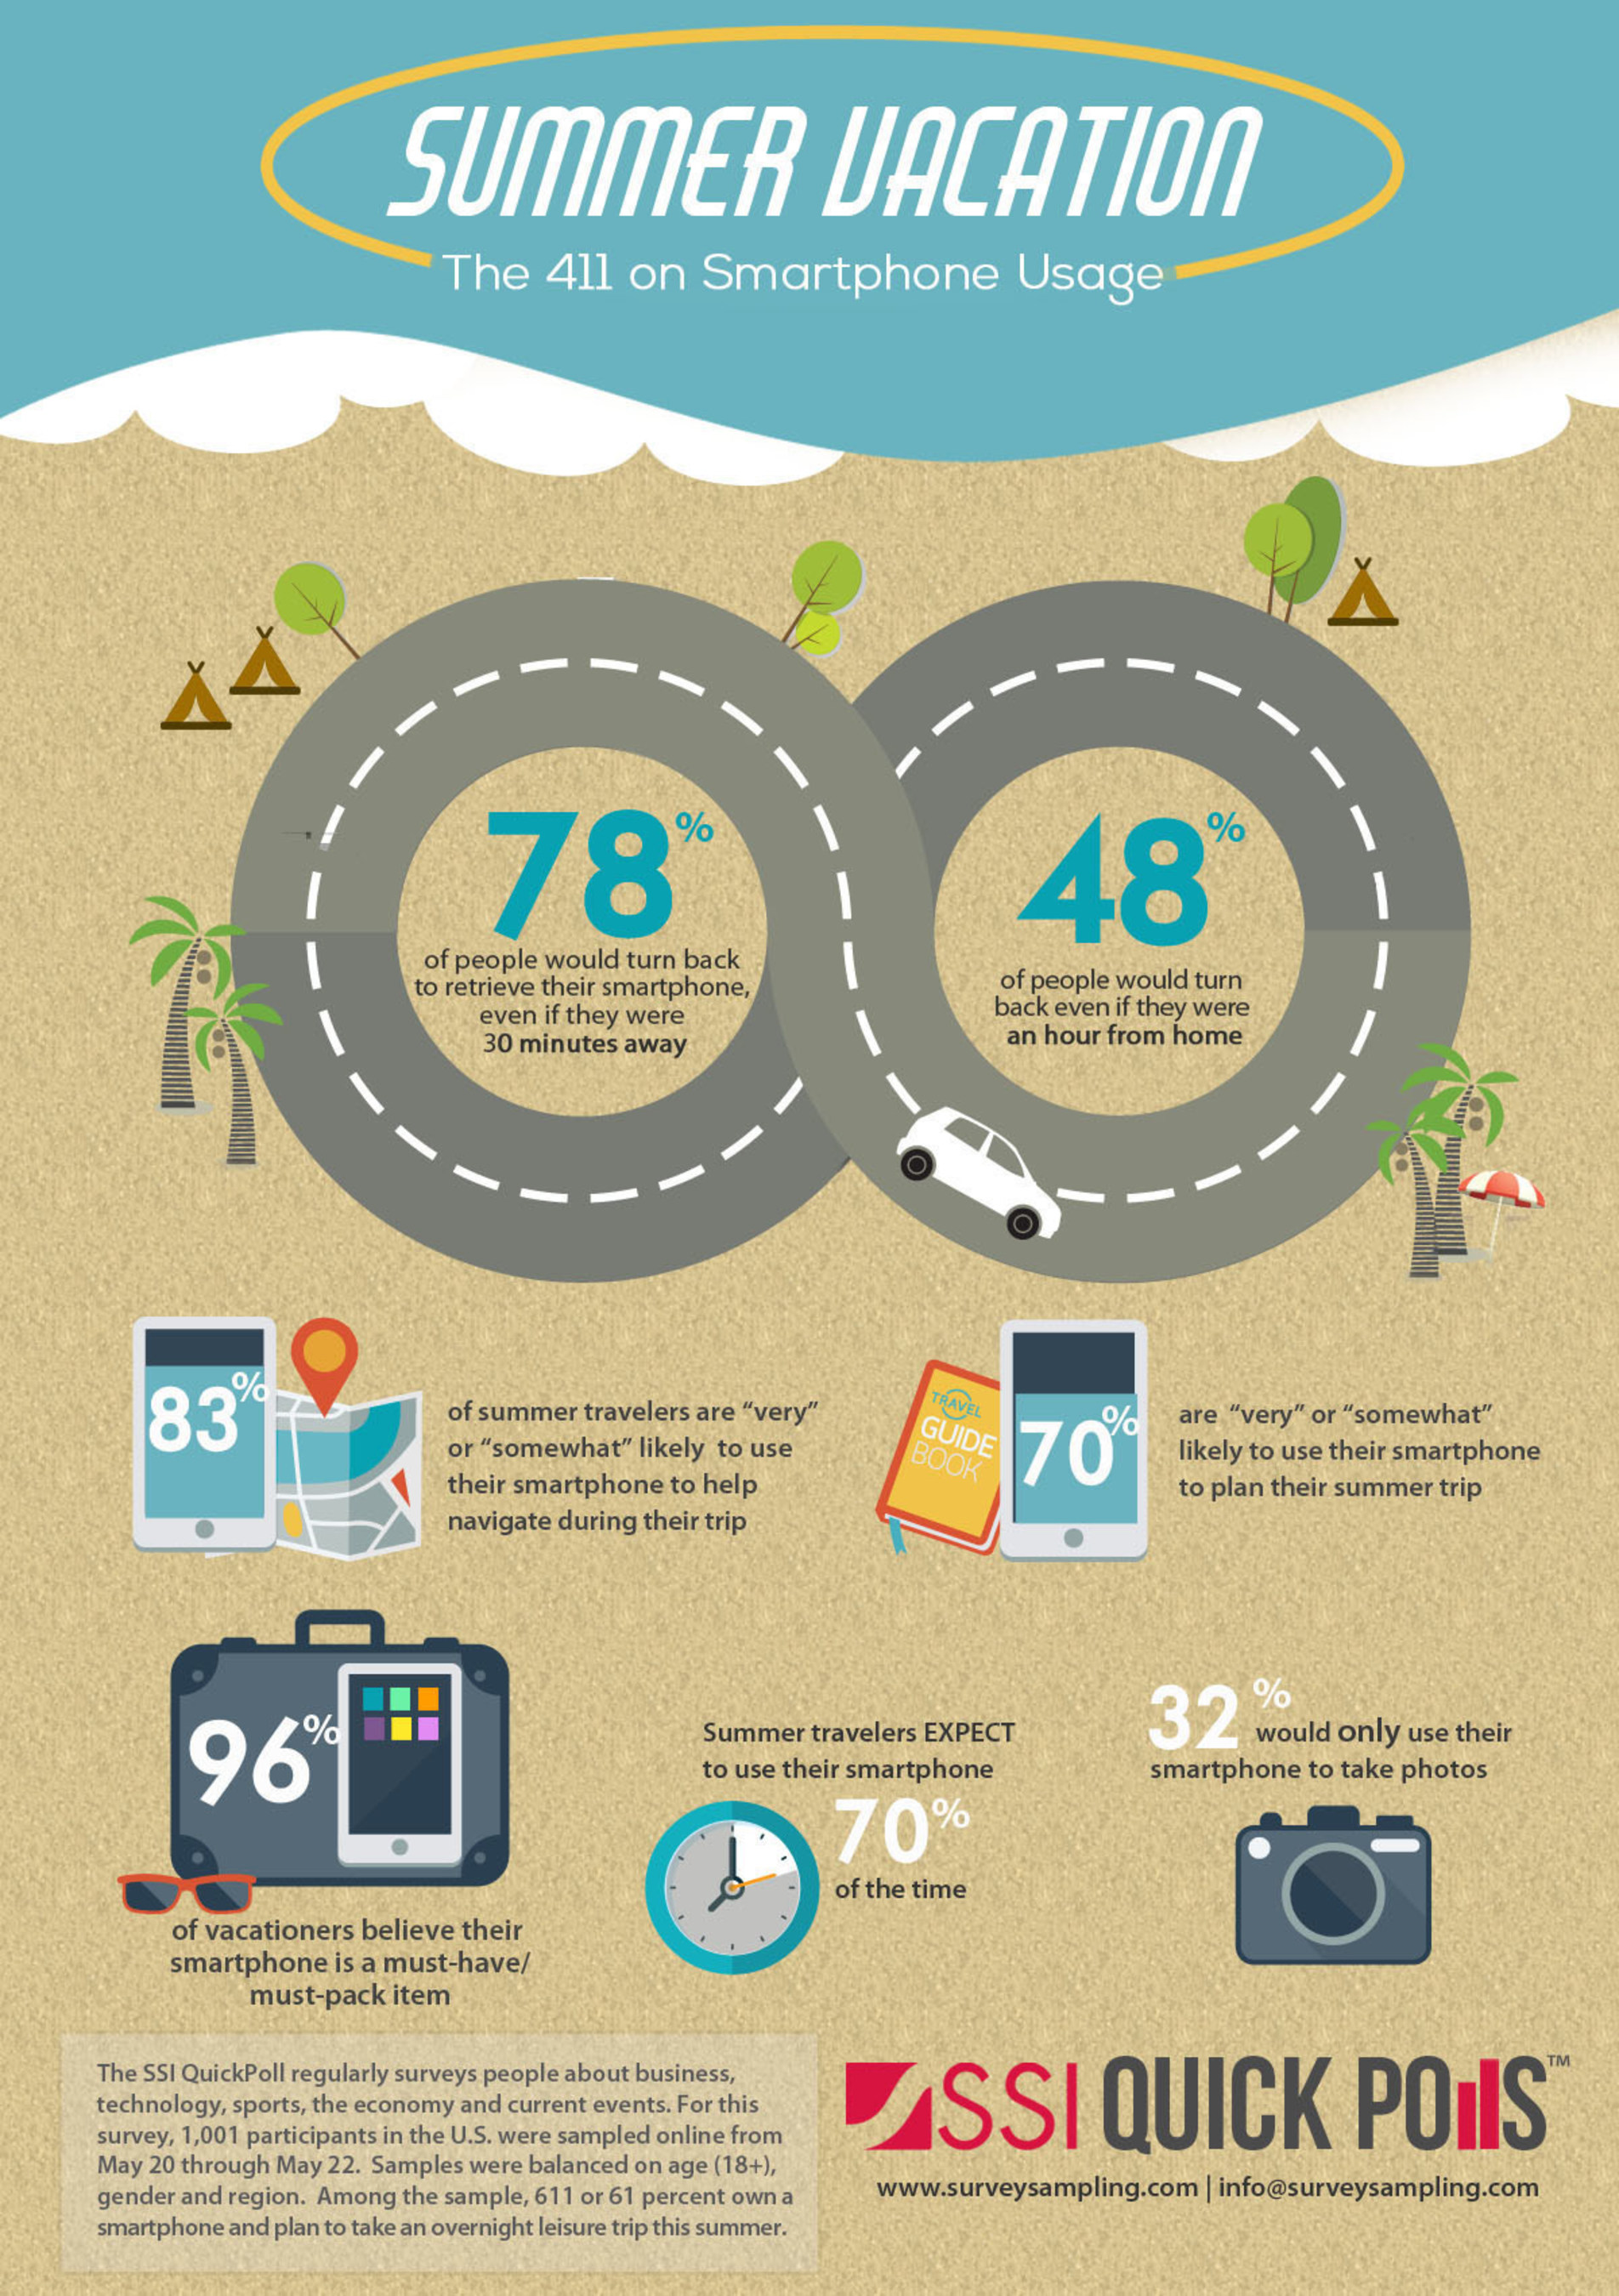 SSI QuickPoll Reveals Smartphones are a Sure Way To Learn More About U.S. Vacationers This Summer